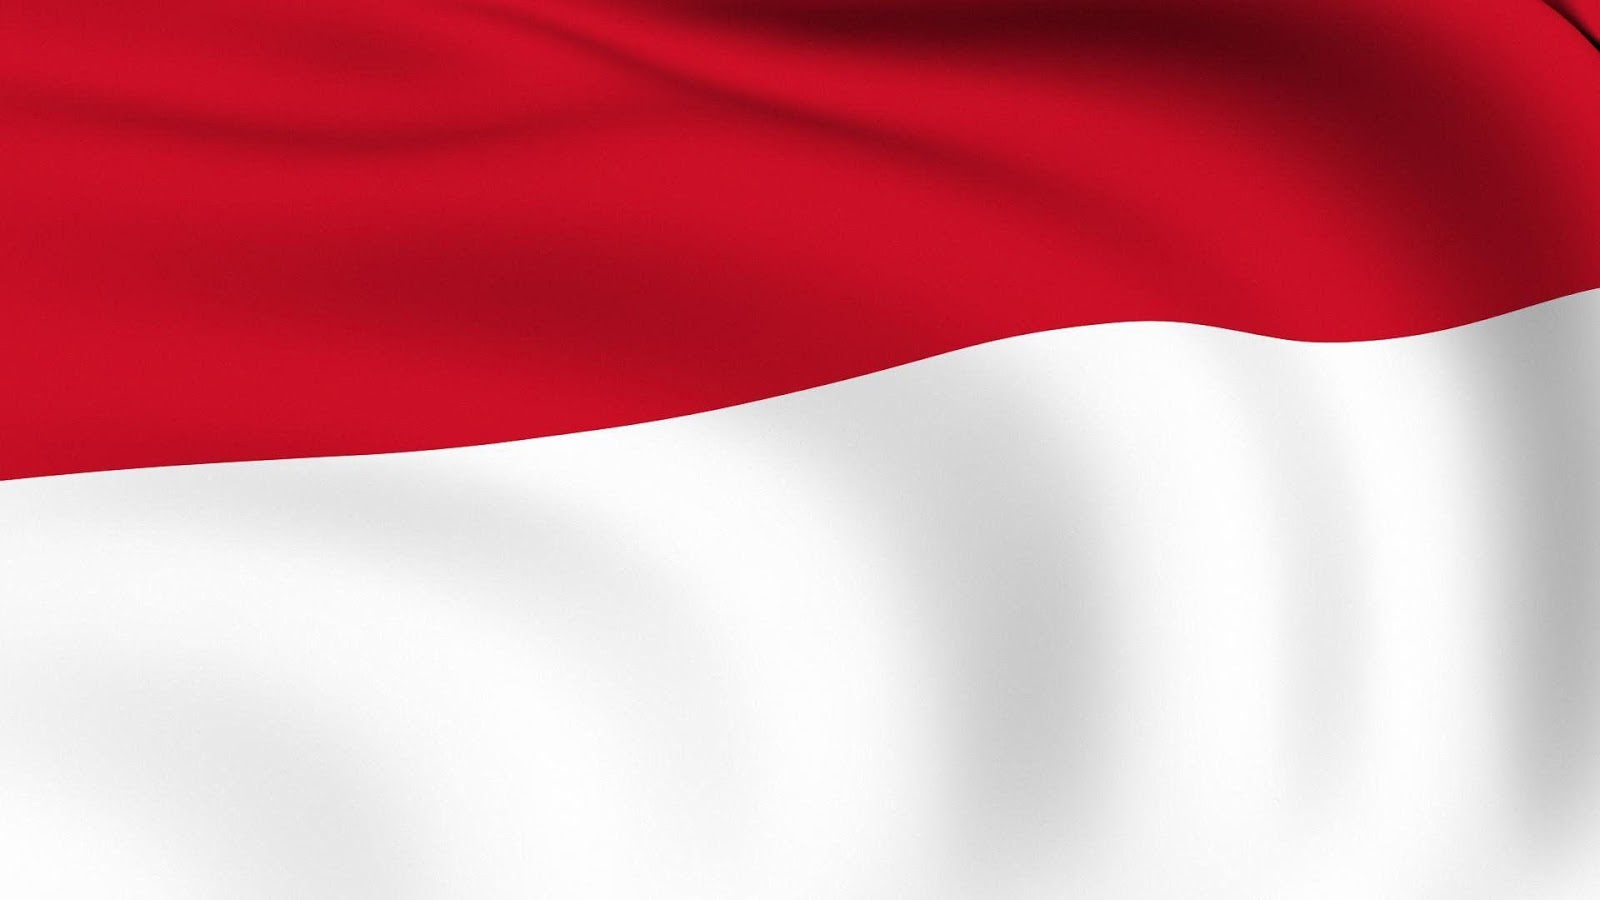 indonesia flag wallpapers 3 0 apk download android personalization